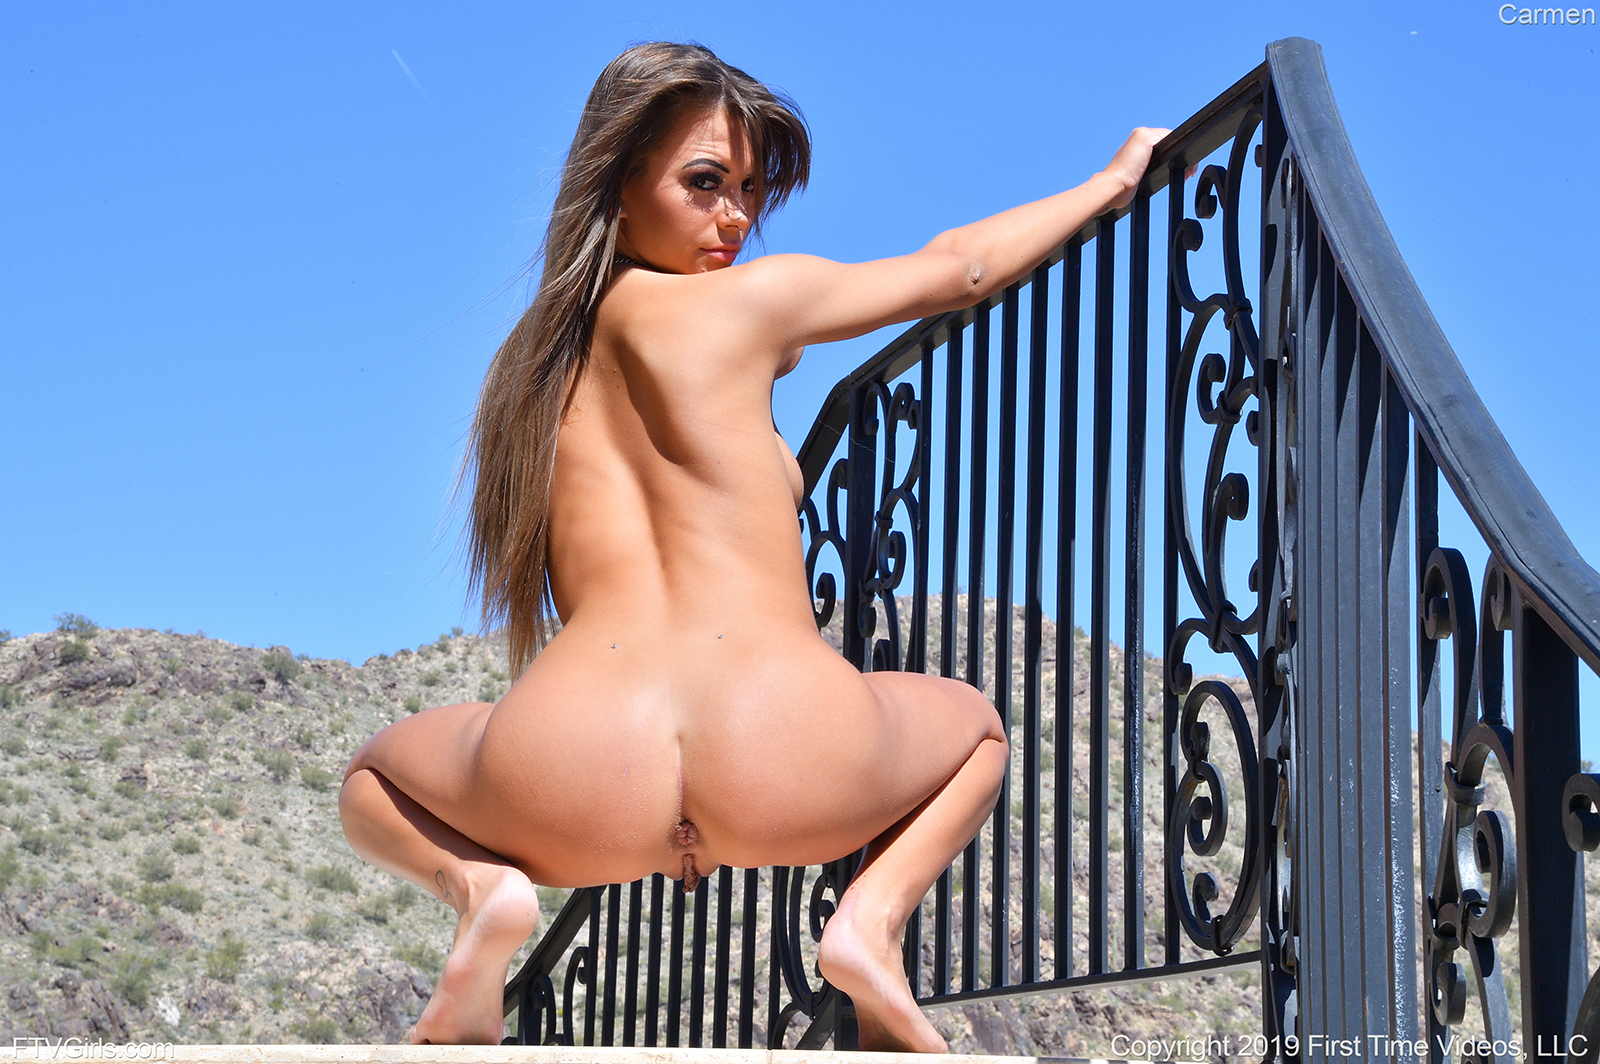 wpid-super-sexual-coed-carmen-totally-naked-out-in-the-sun-prolapsing-her-anus7.jpg